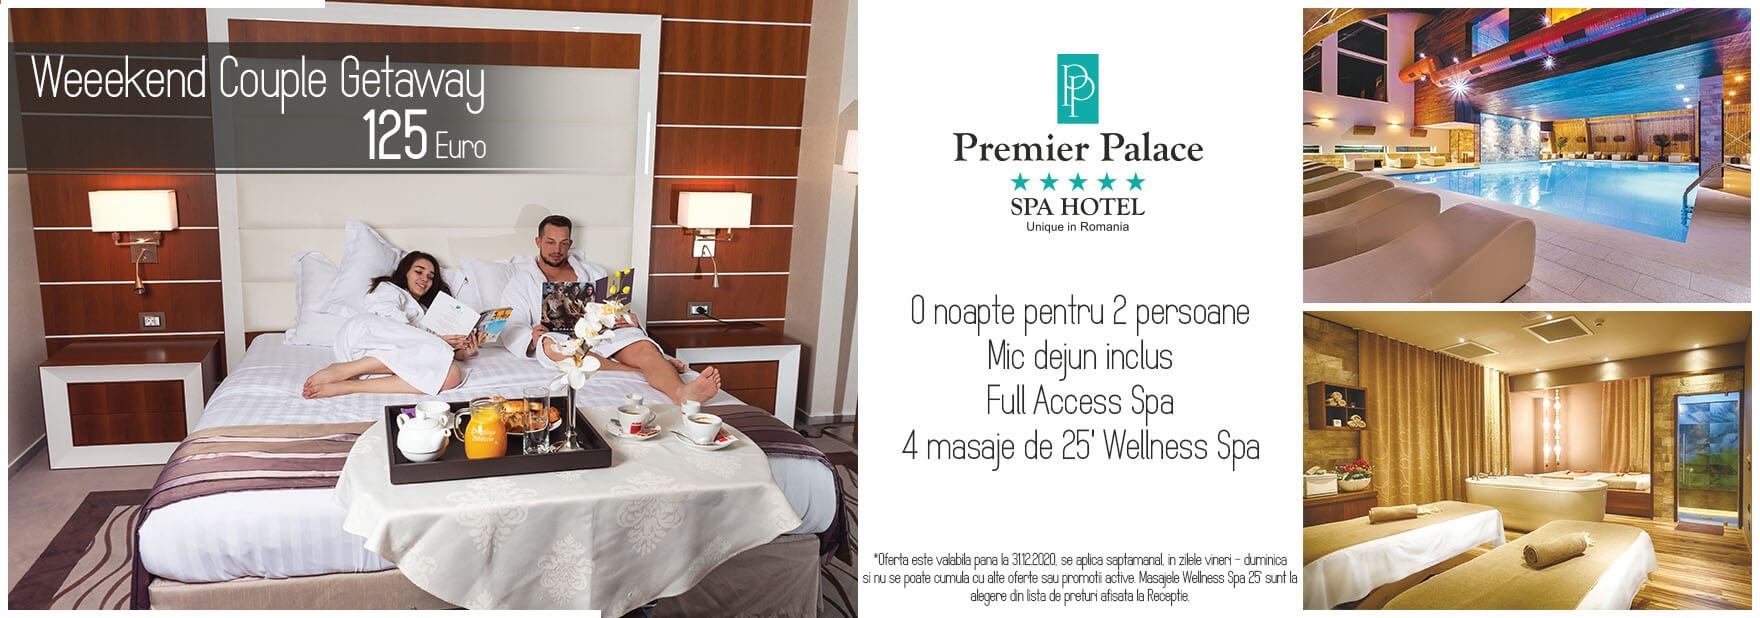 weekend couple getaway premier palace